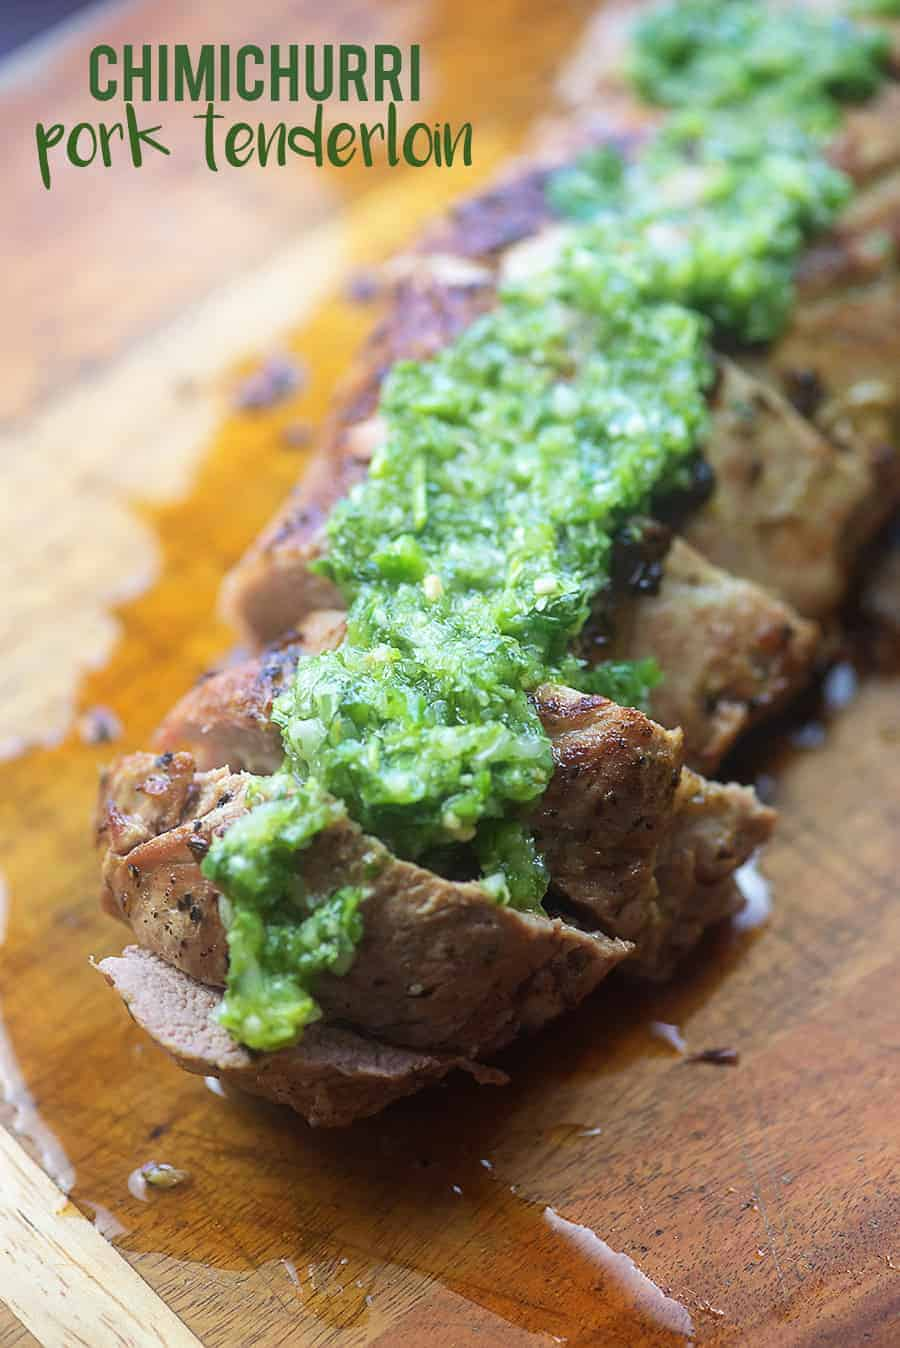 Chimichurri pork tenderloin! Homemade cilantro chimichurri is the perfect topping for this oven baked pork tenderloin! #recipe #lowcarb #keto #pork